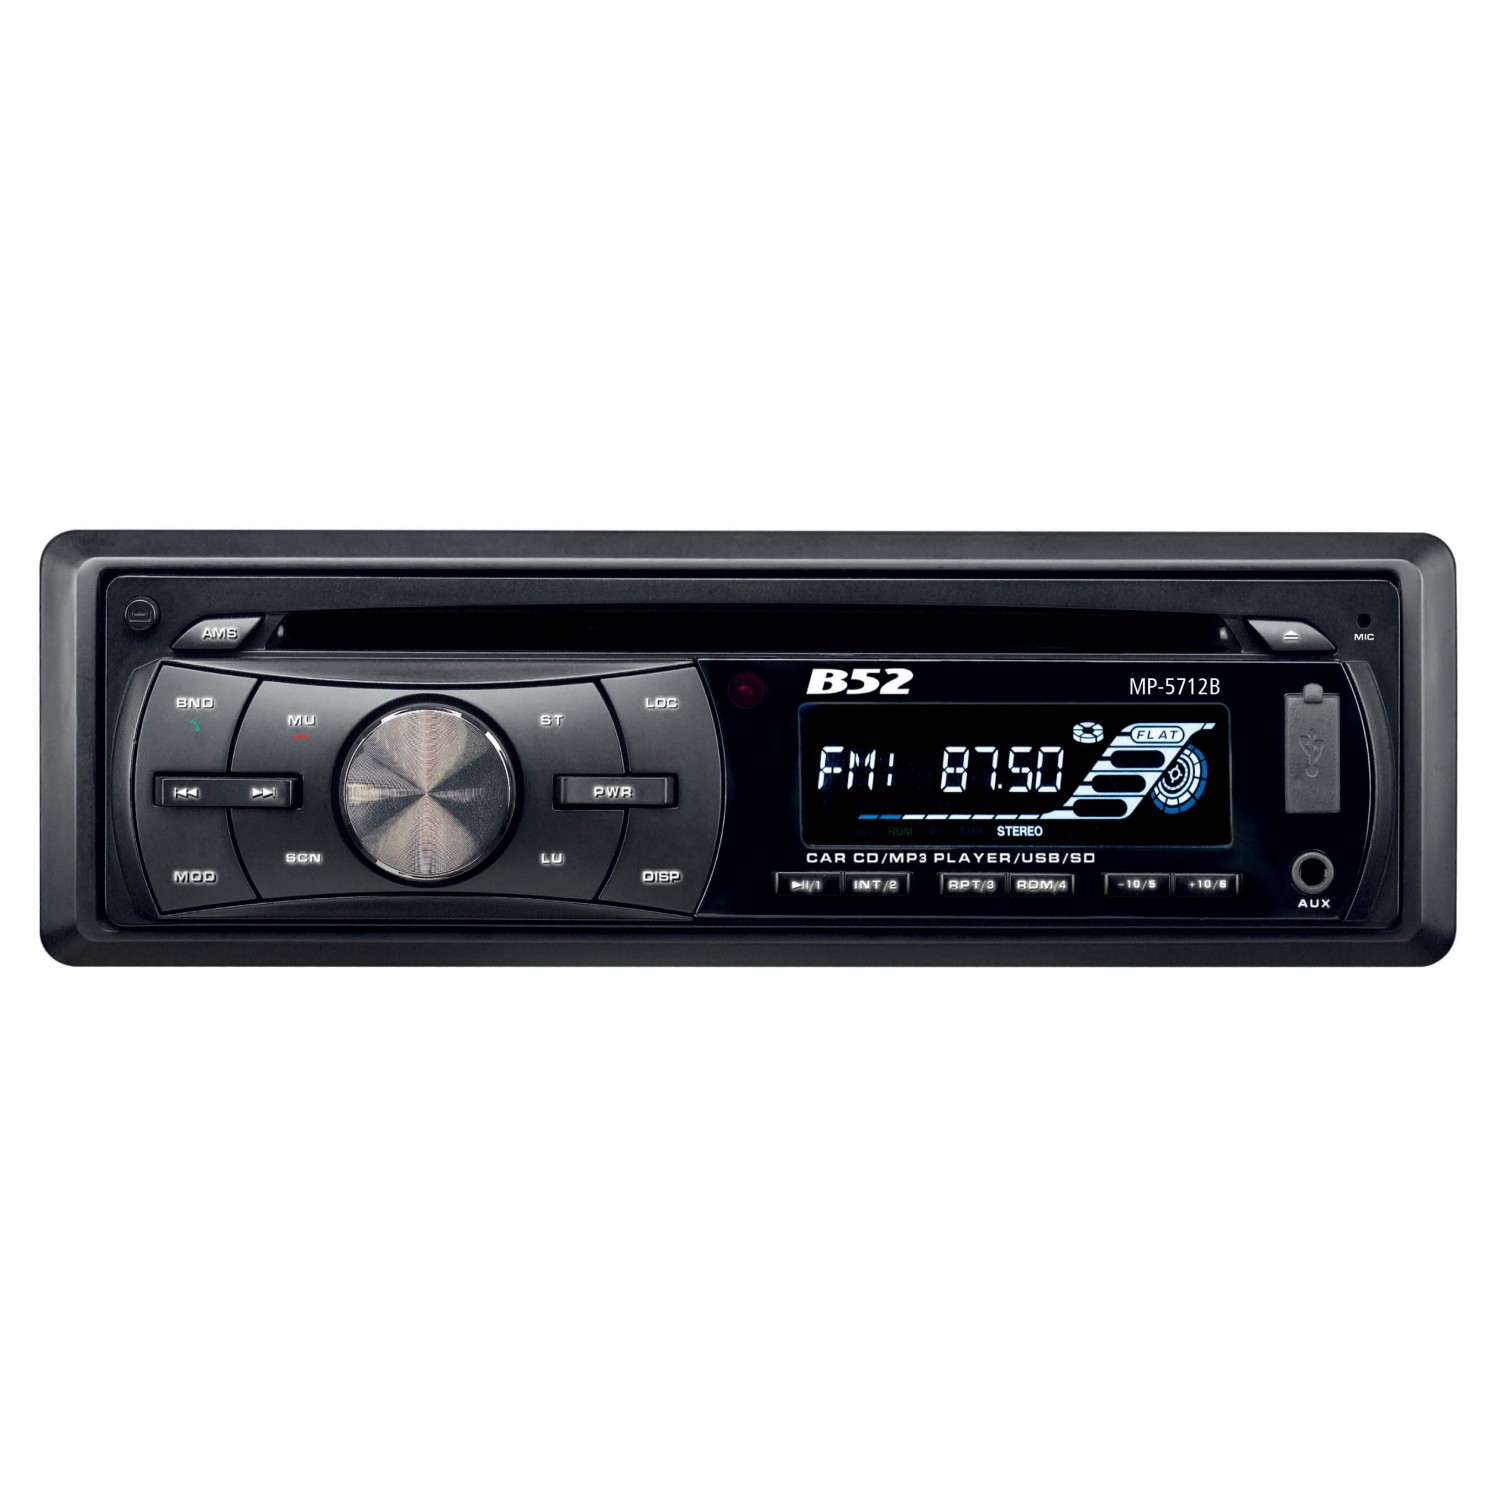 Rádio Automotivo com MP3 B52 MP 5712B